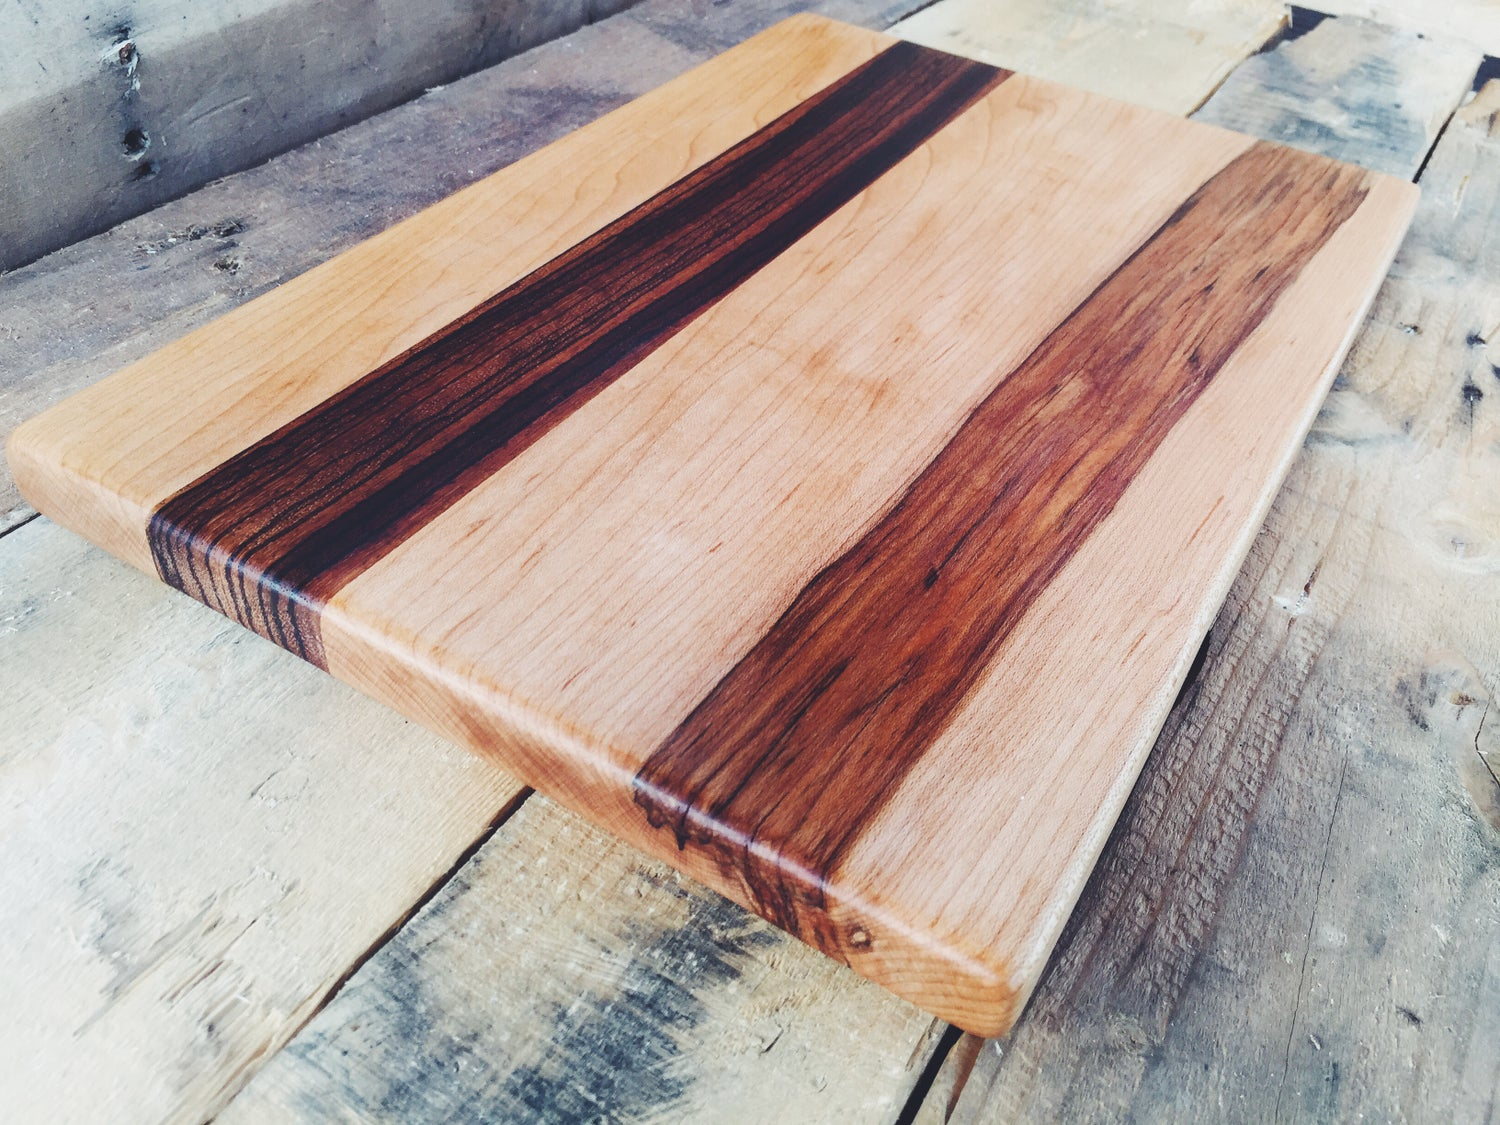 Image of Zebra Wood and Spalted Maple Board